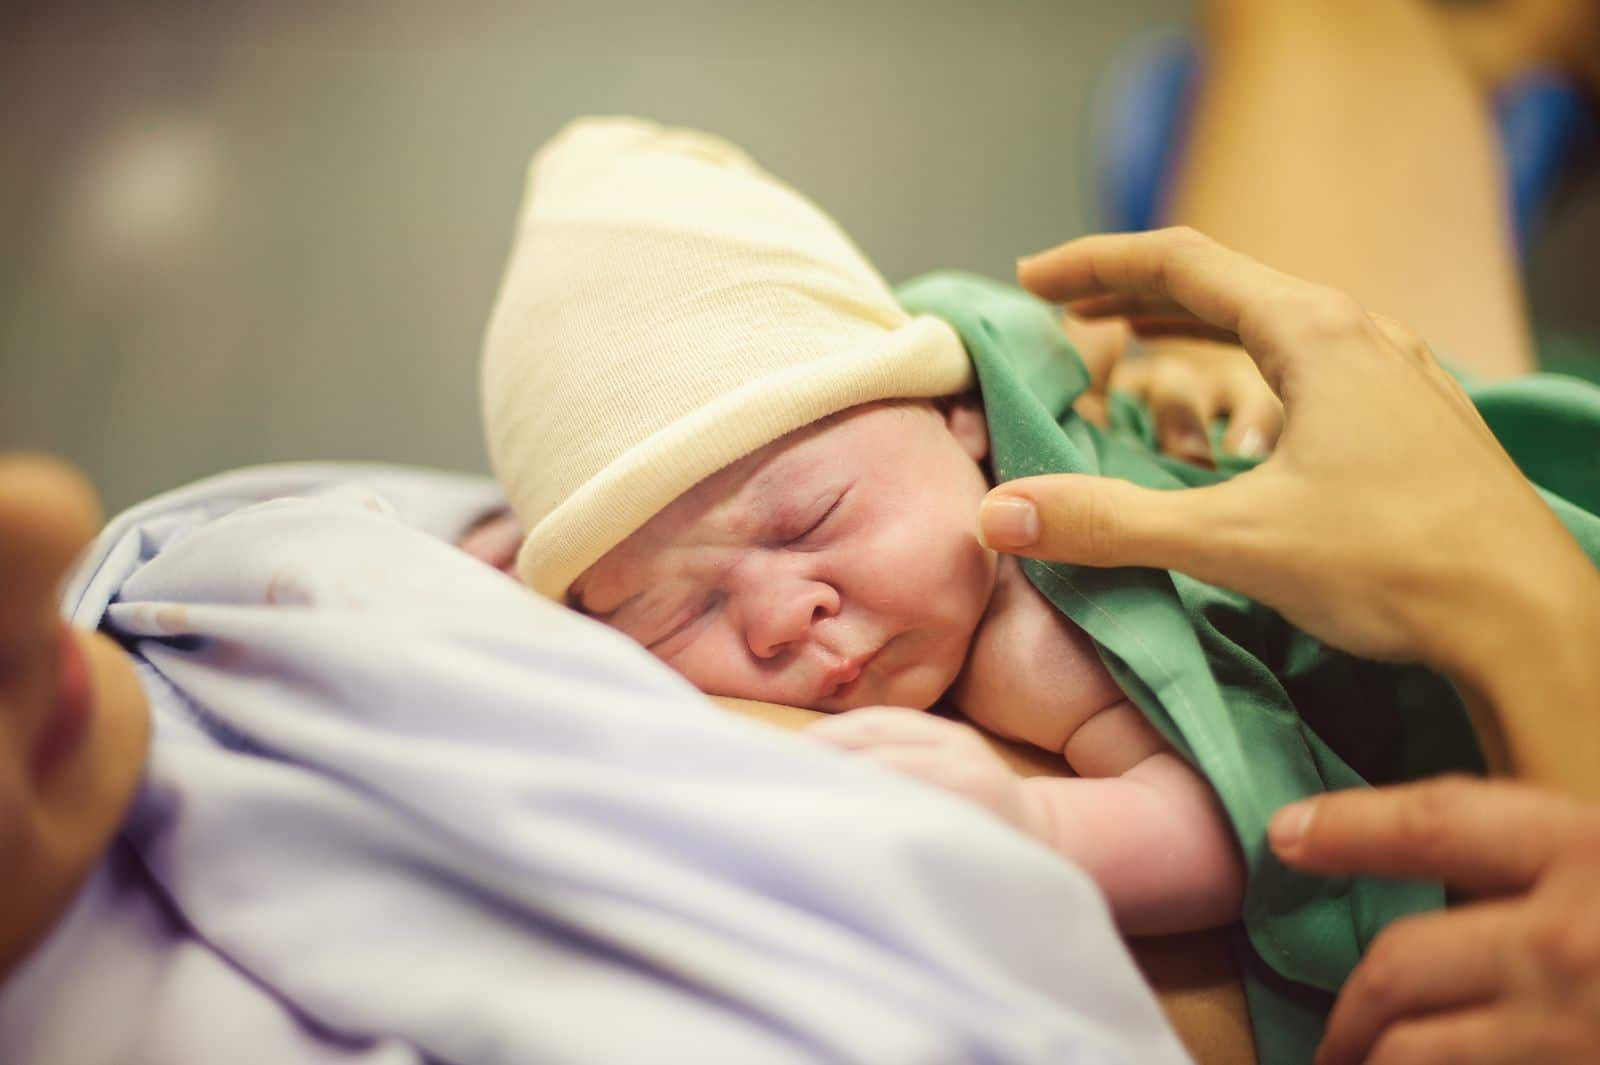 Various Research Shows that Injuries during Birth are Often Avoidable